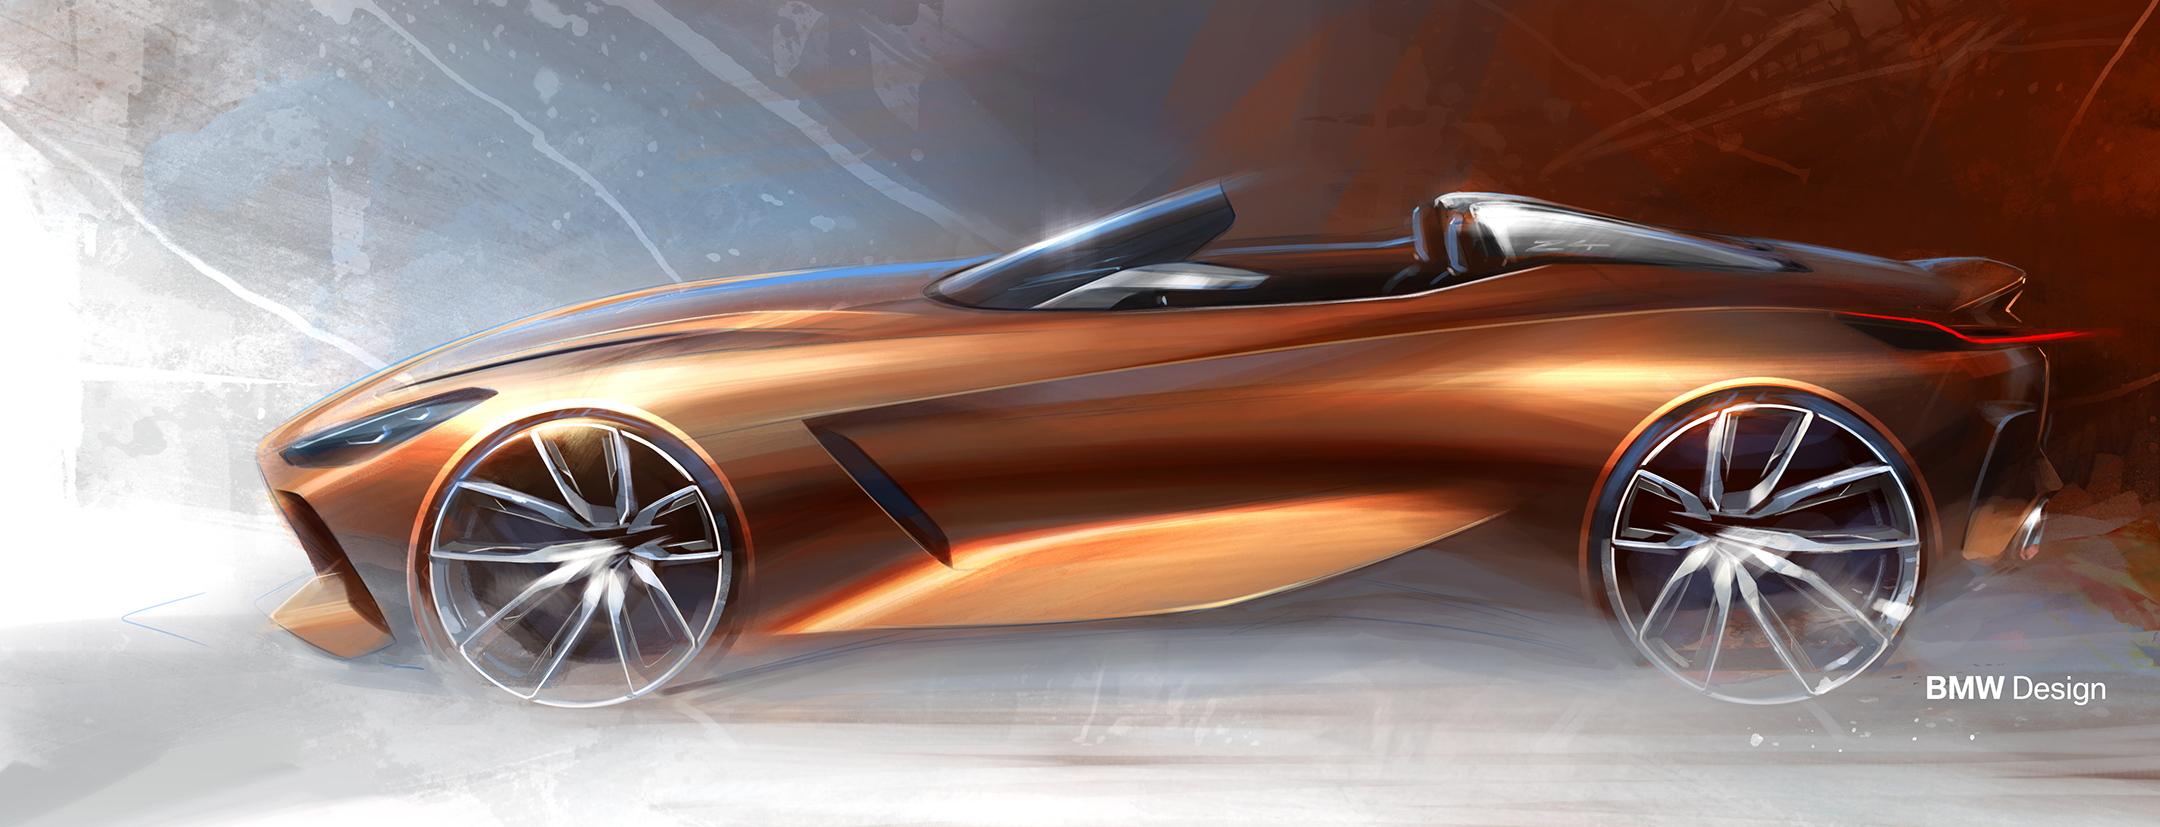 BMW Concept Z4 - 2017 - sketch - side-face / profil